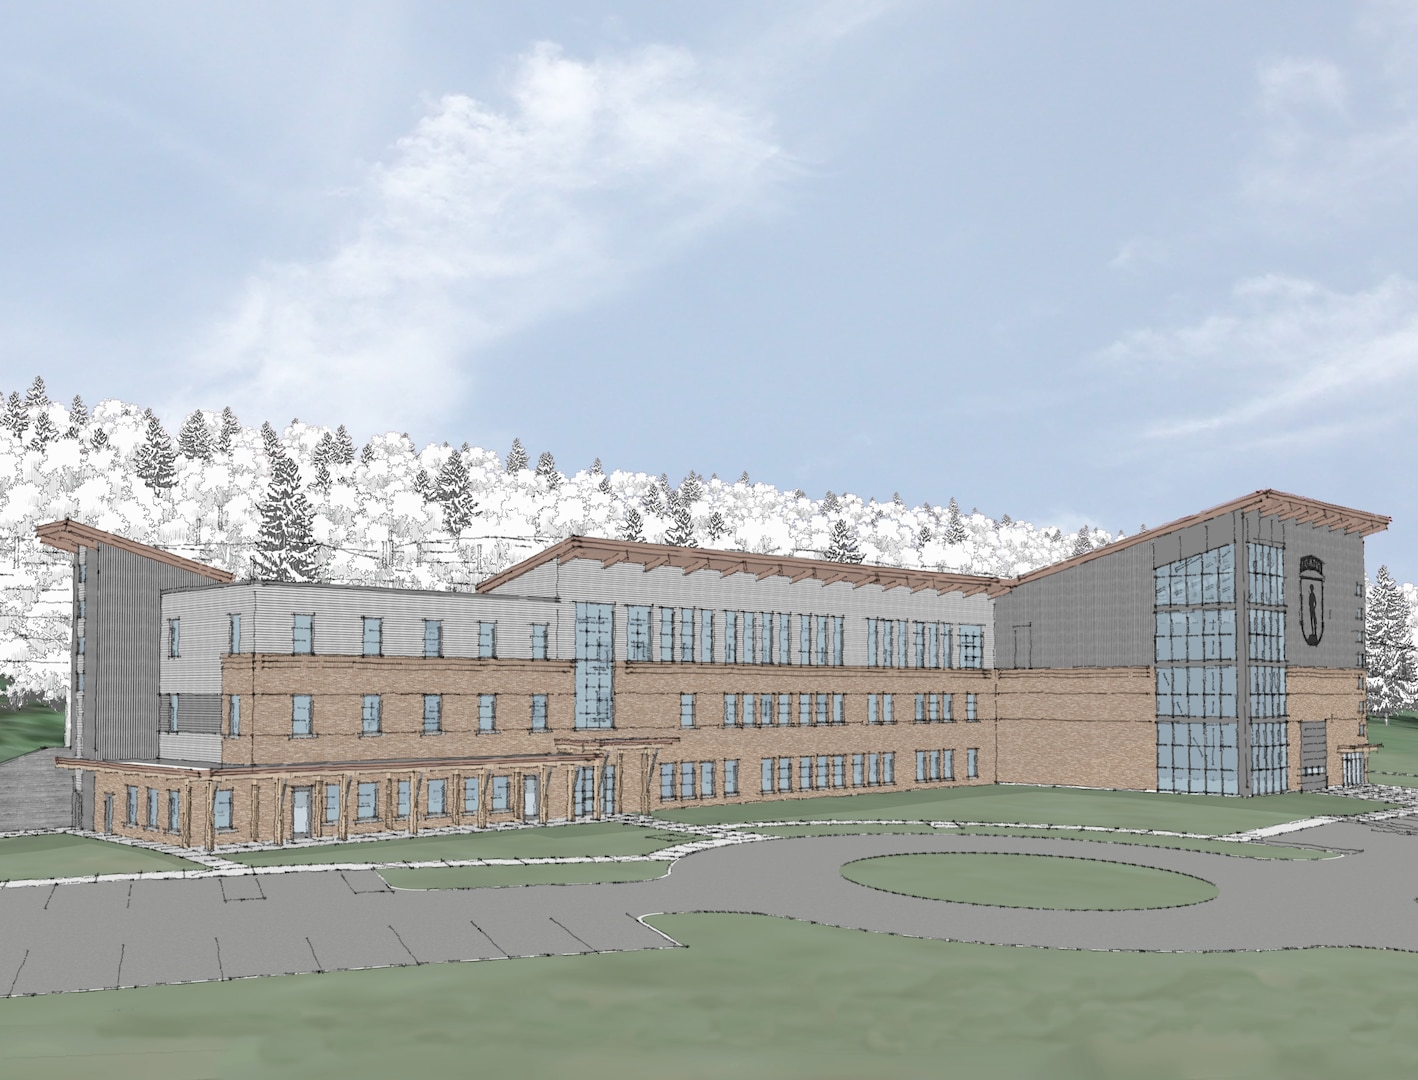 A groundbreaking ceremony for the construction of a new Army Mountain Warfare School at the Camp Ethan Allen Training Site in Jericho, Vermont, is scheduled for Nov. 5, 2020. This rendition depicts the design of the $27 million facility, scheduled to be complete in April 2022.